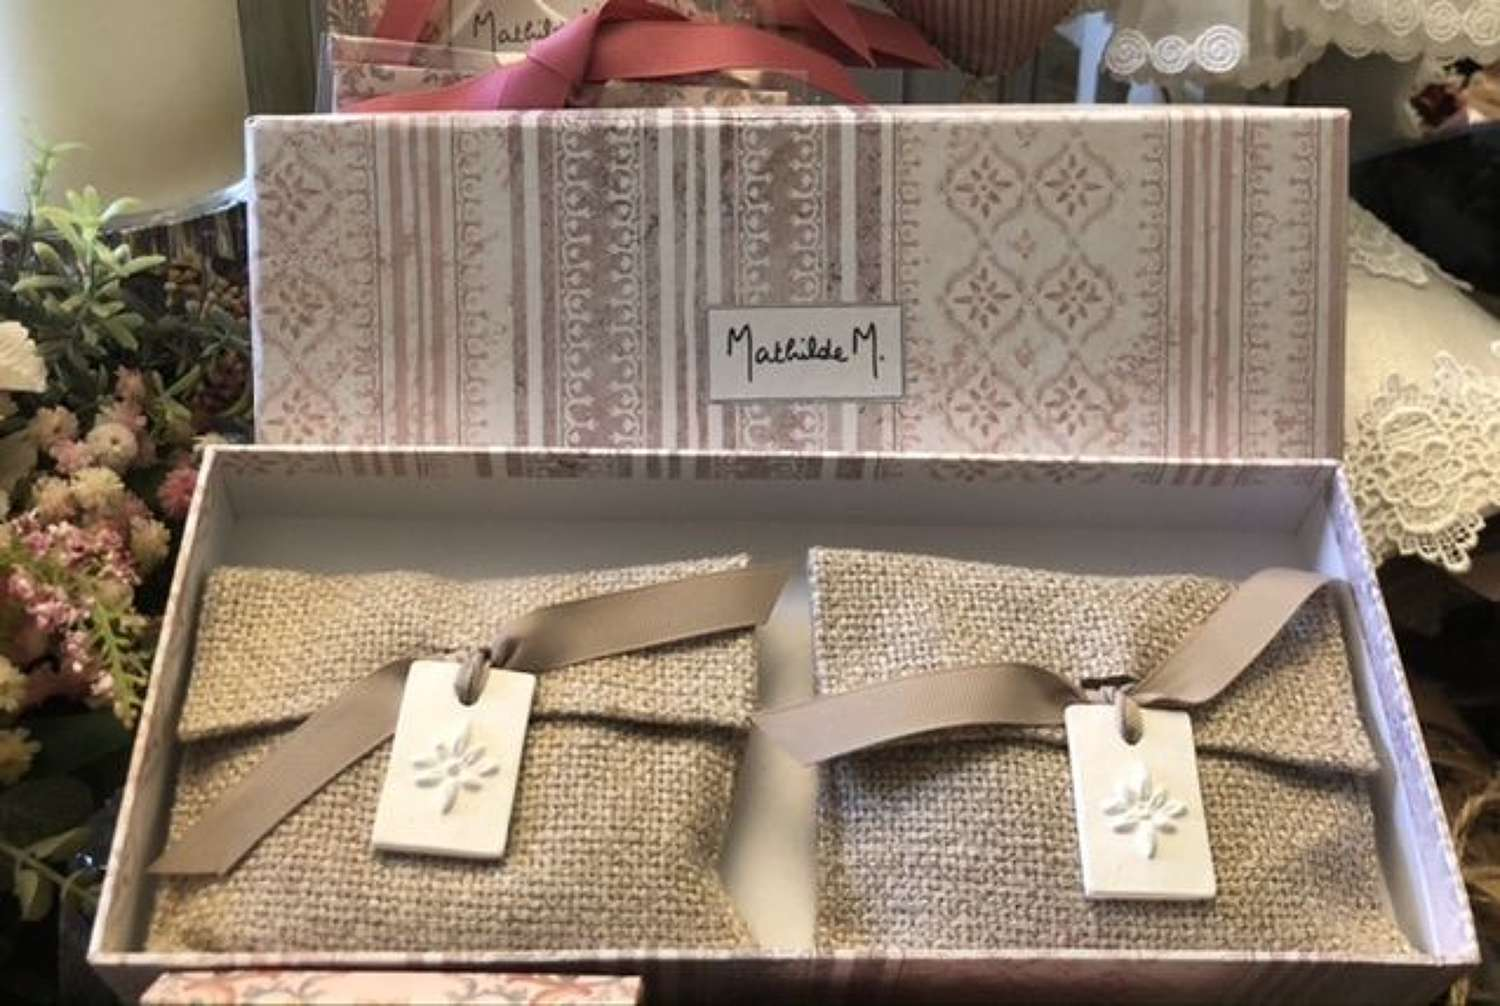 Mathilde M. France 2 Figuier Dolce Scented Pouches.